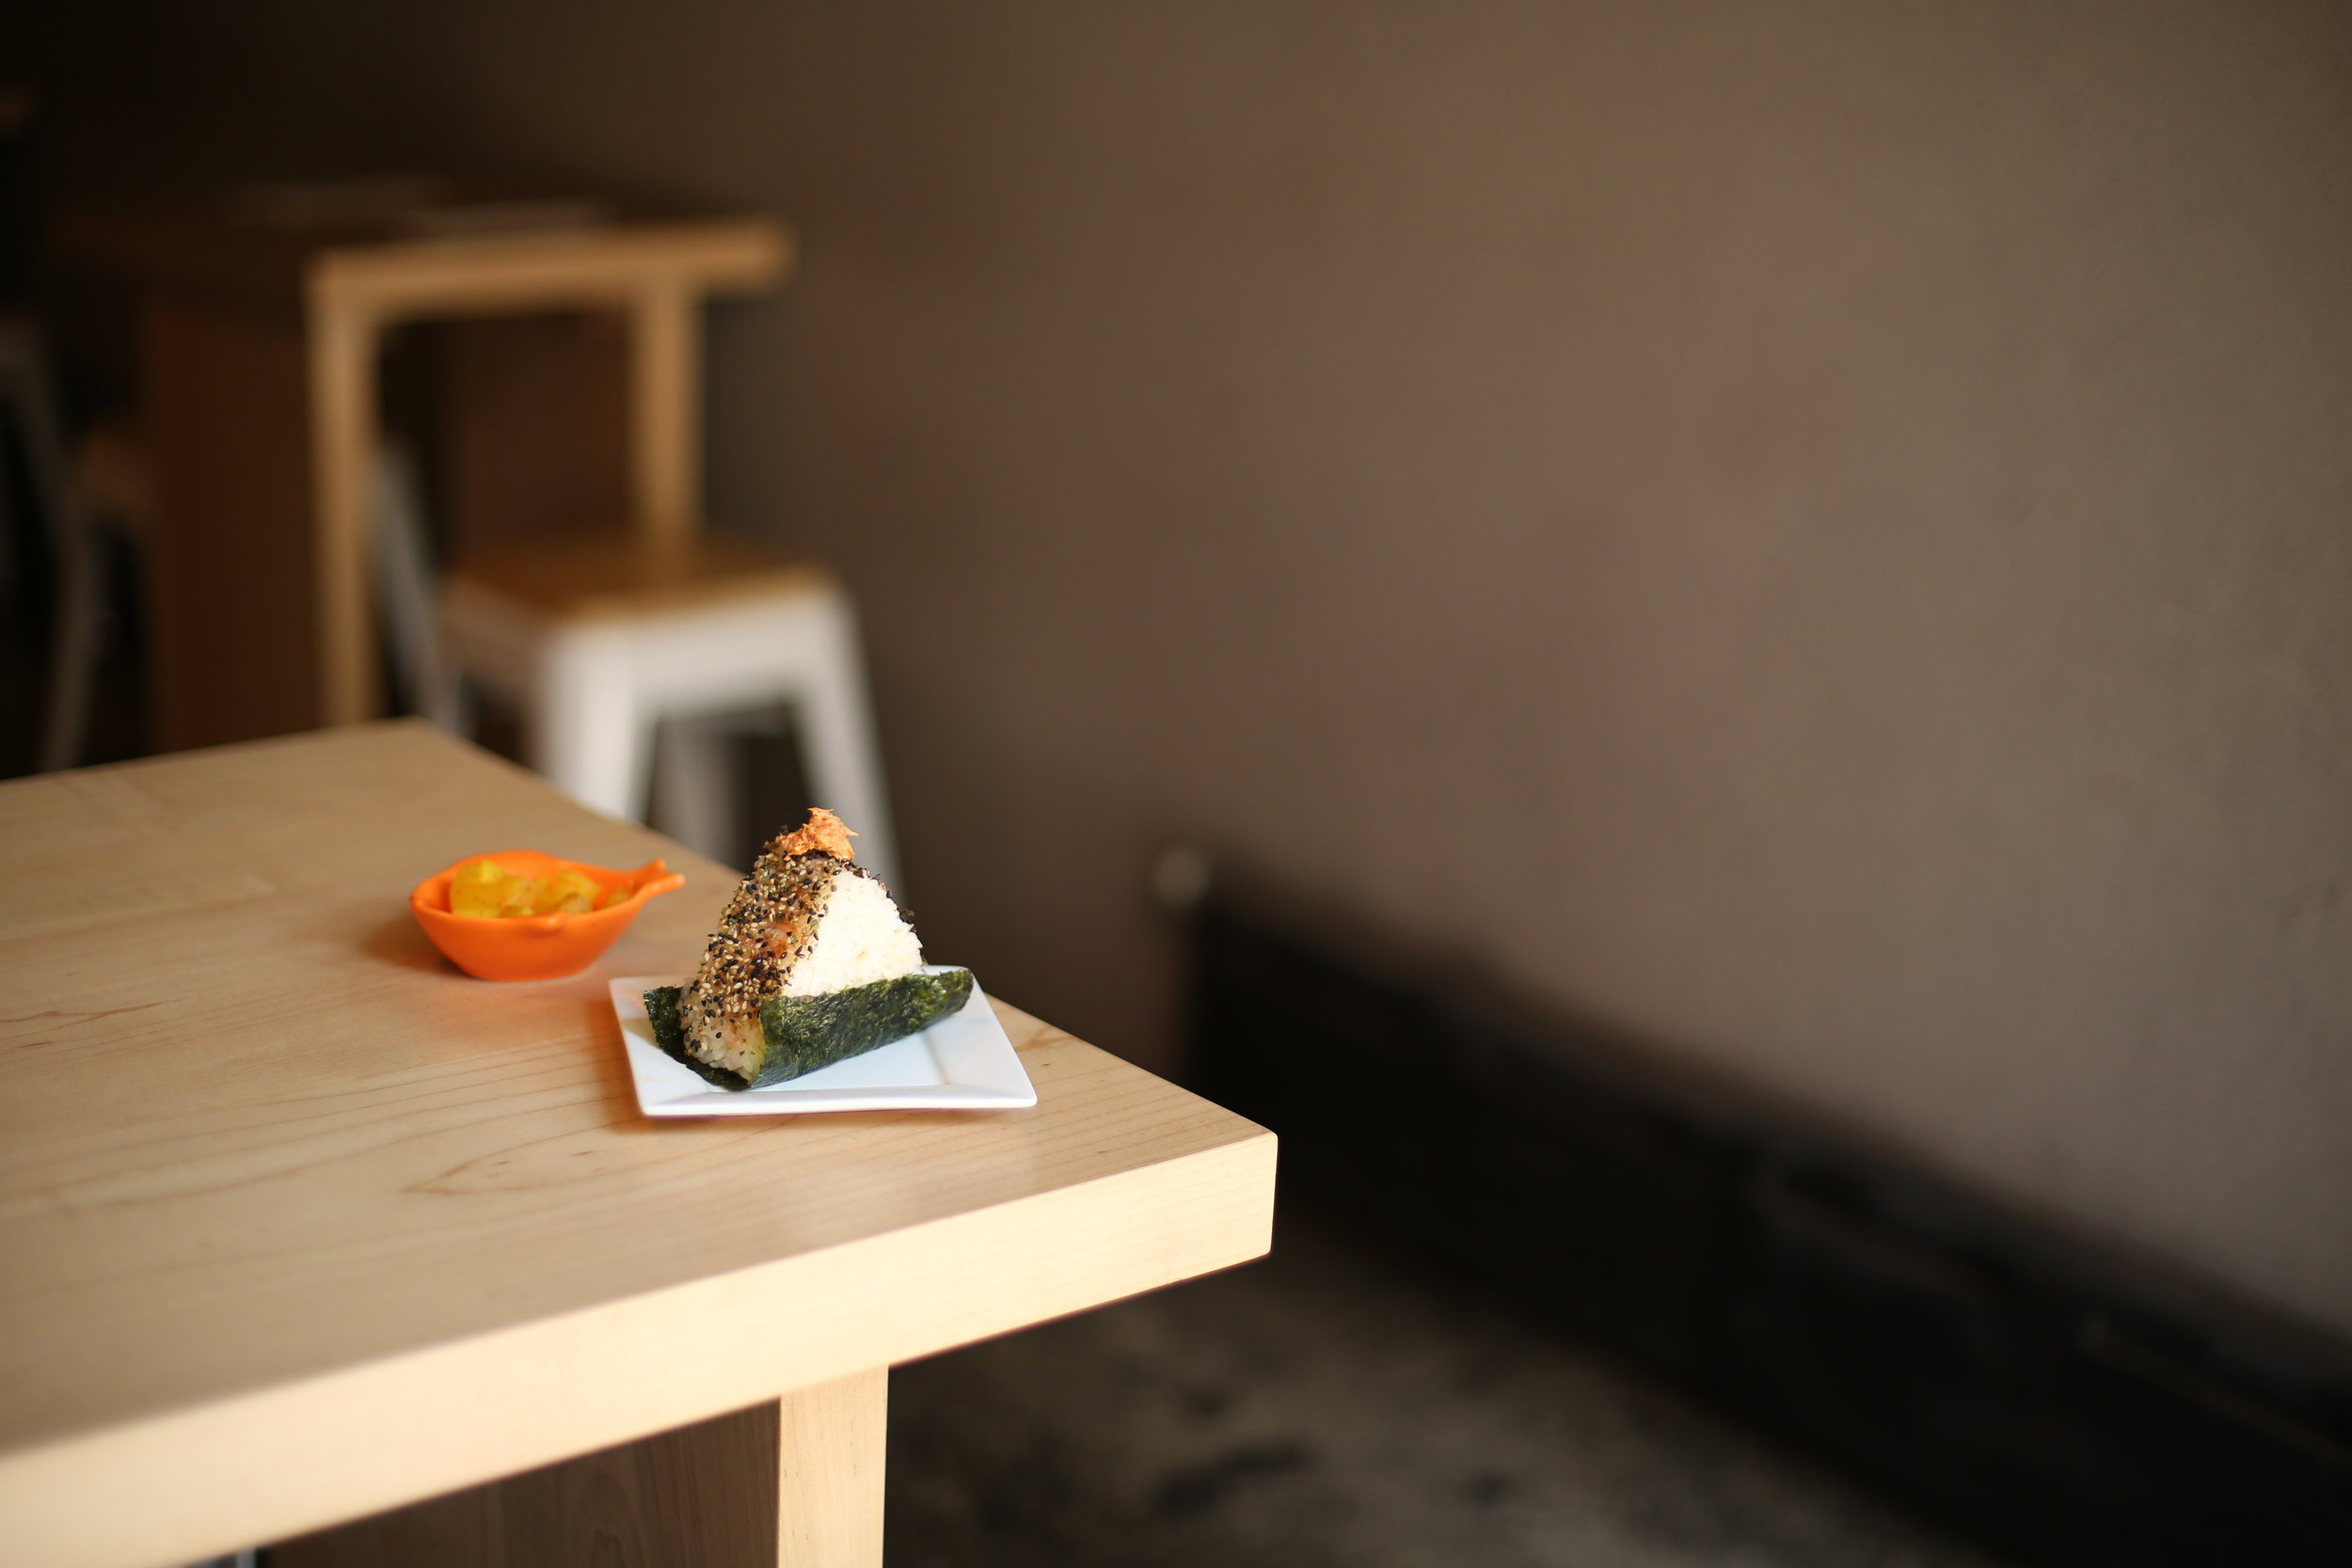 Spicy tuna onigiri, a sweet and sour rice ball appetizer.